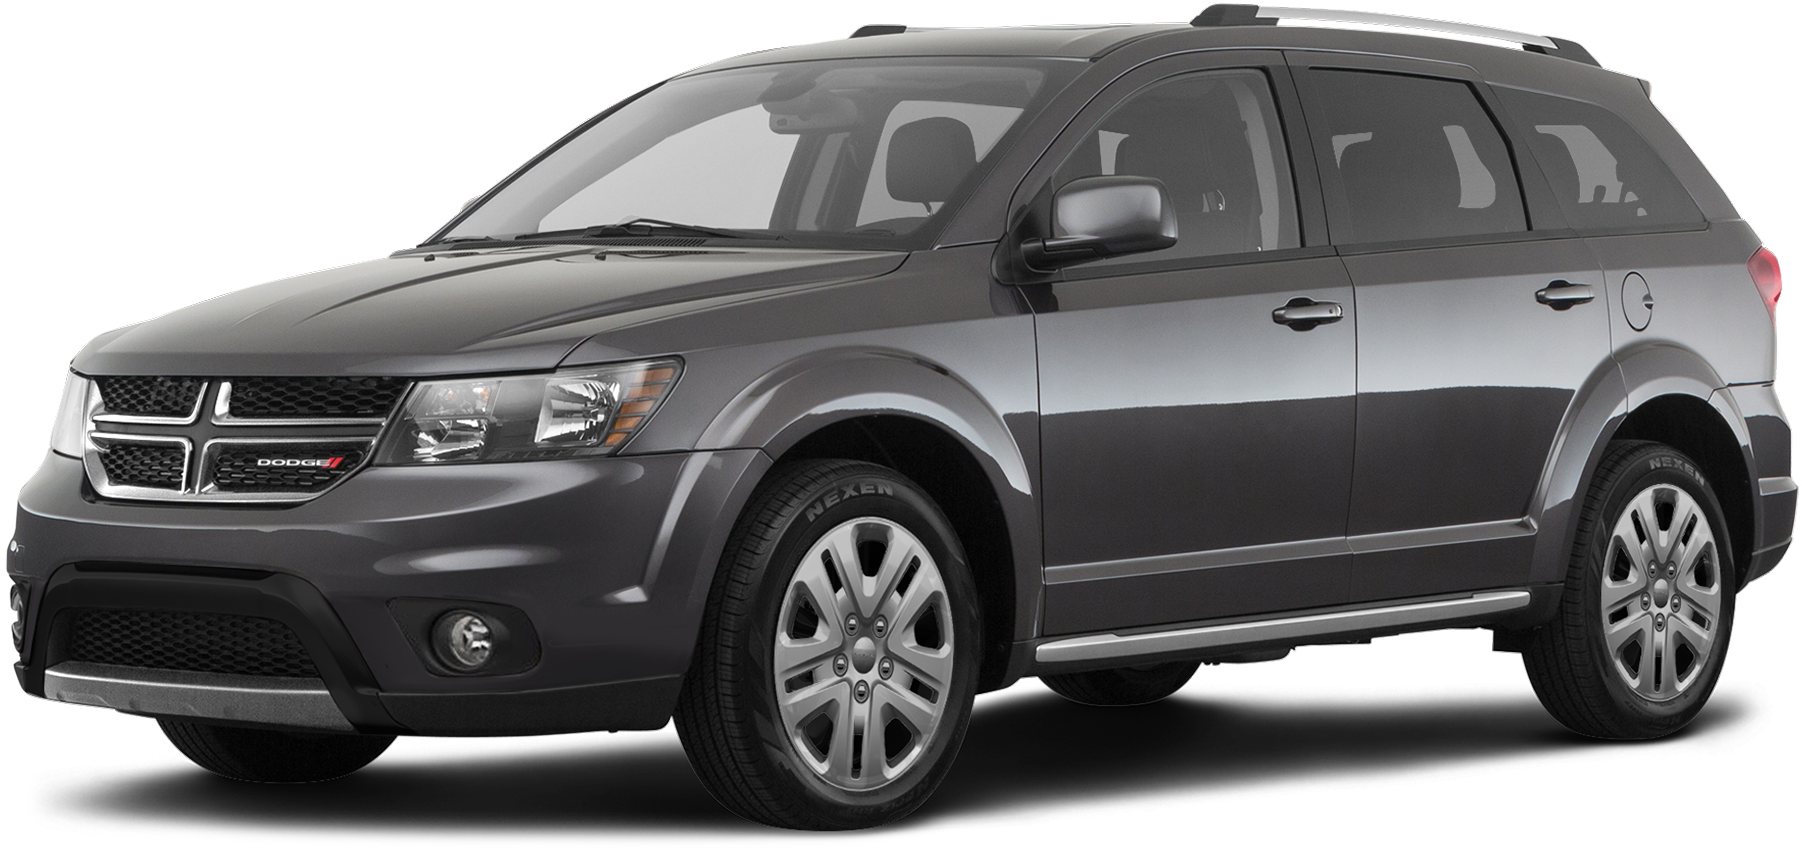 Review & Compare the 2018 Dodge Journey at Larry H. Miller